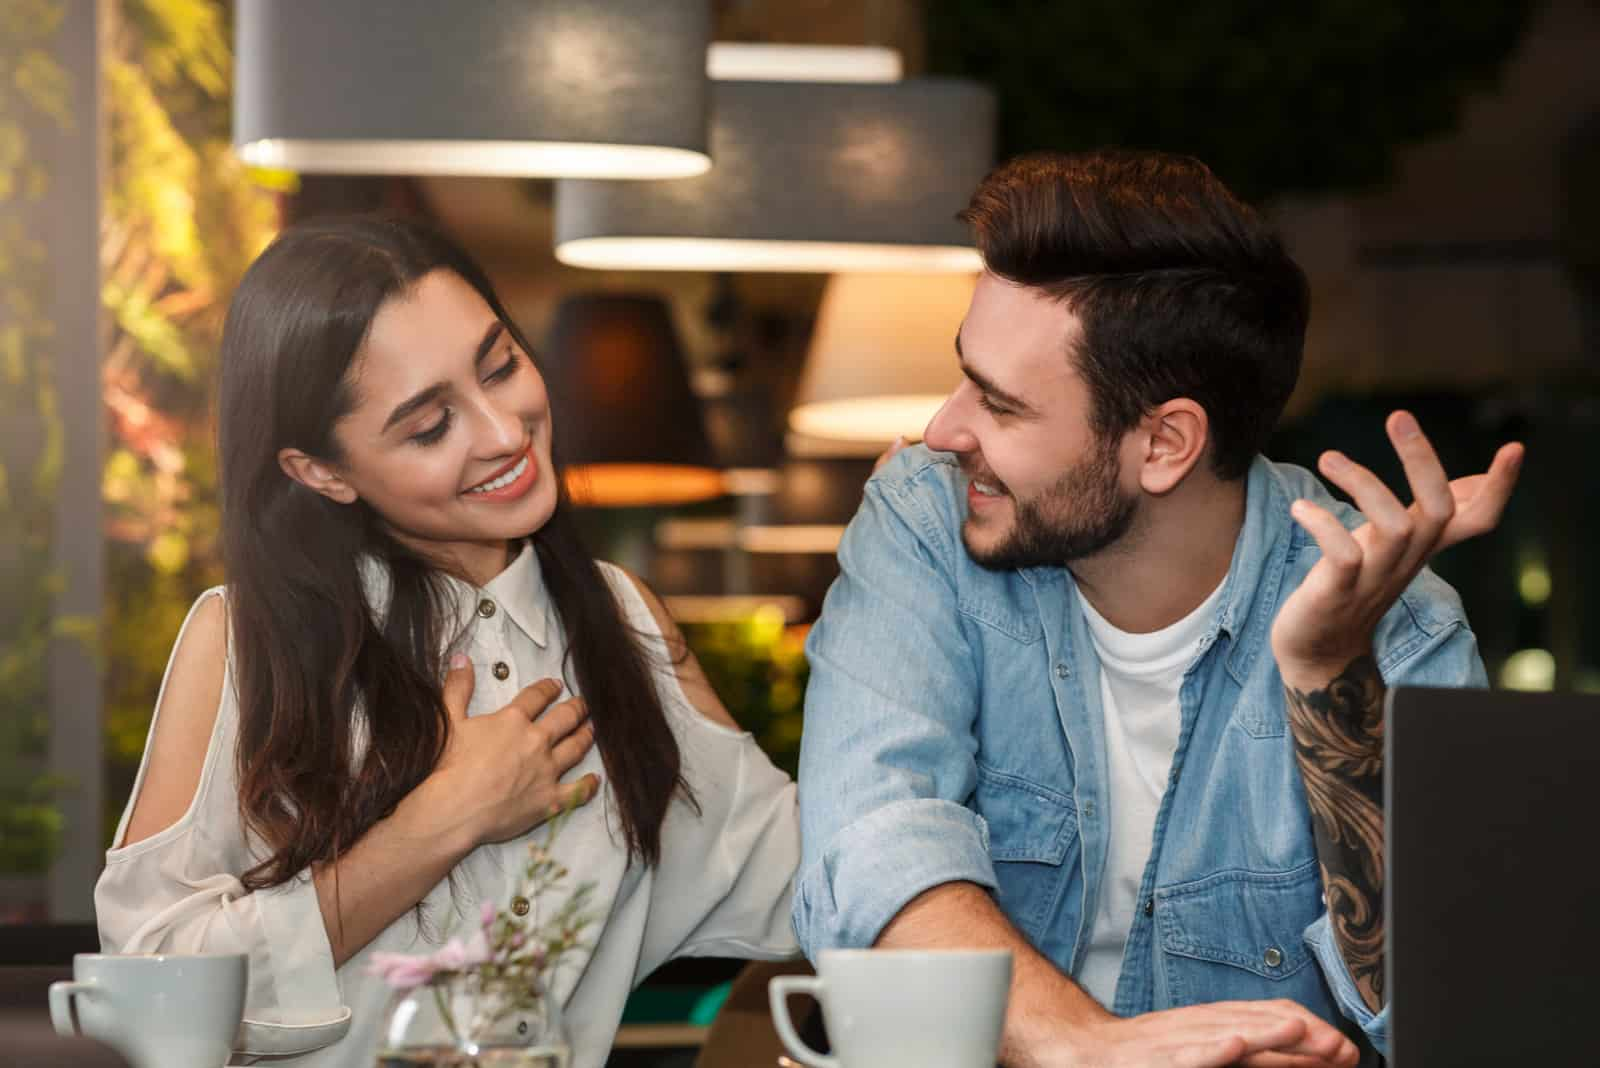 an attractive girl in a cafe flirts with a bearded man